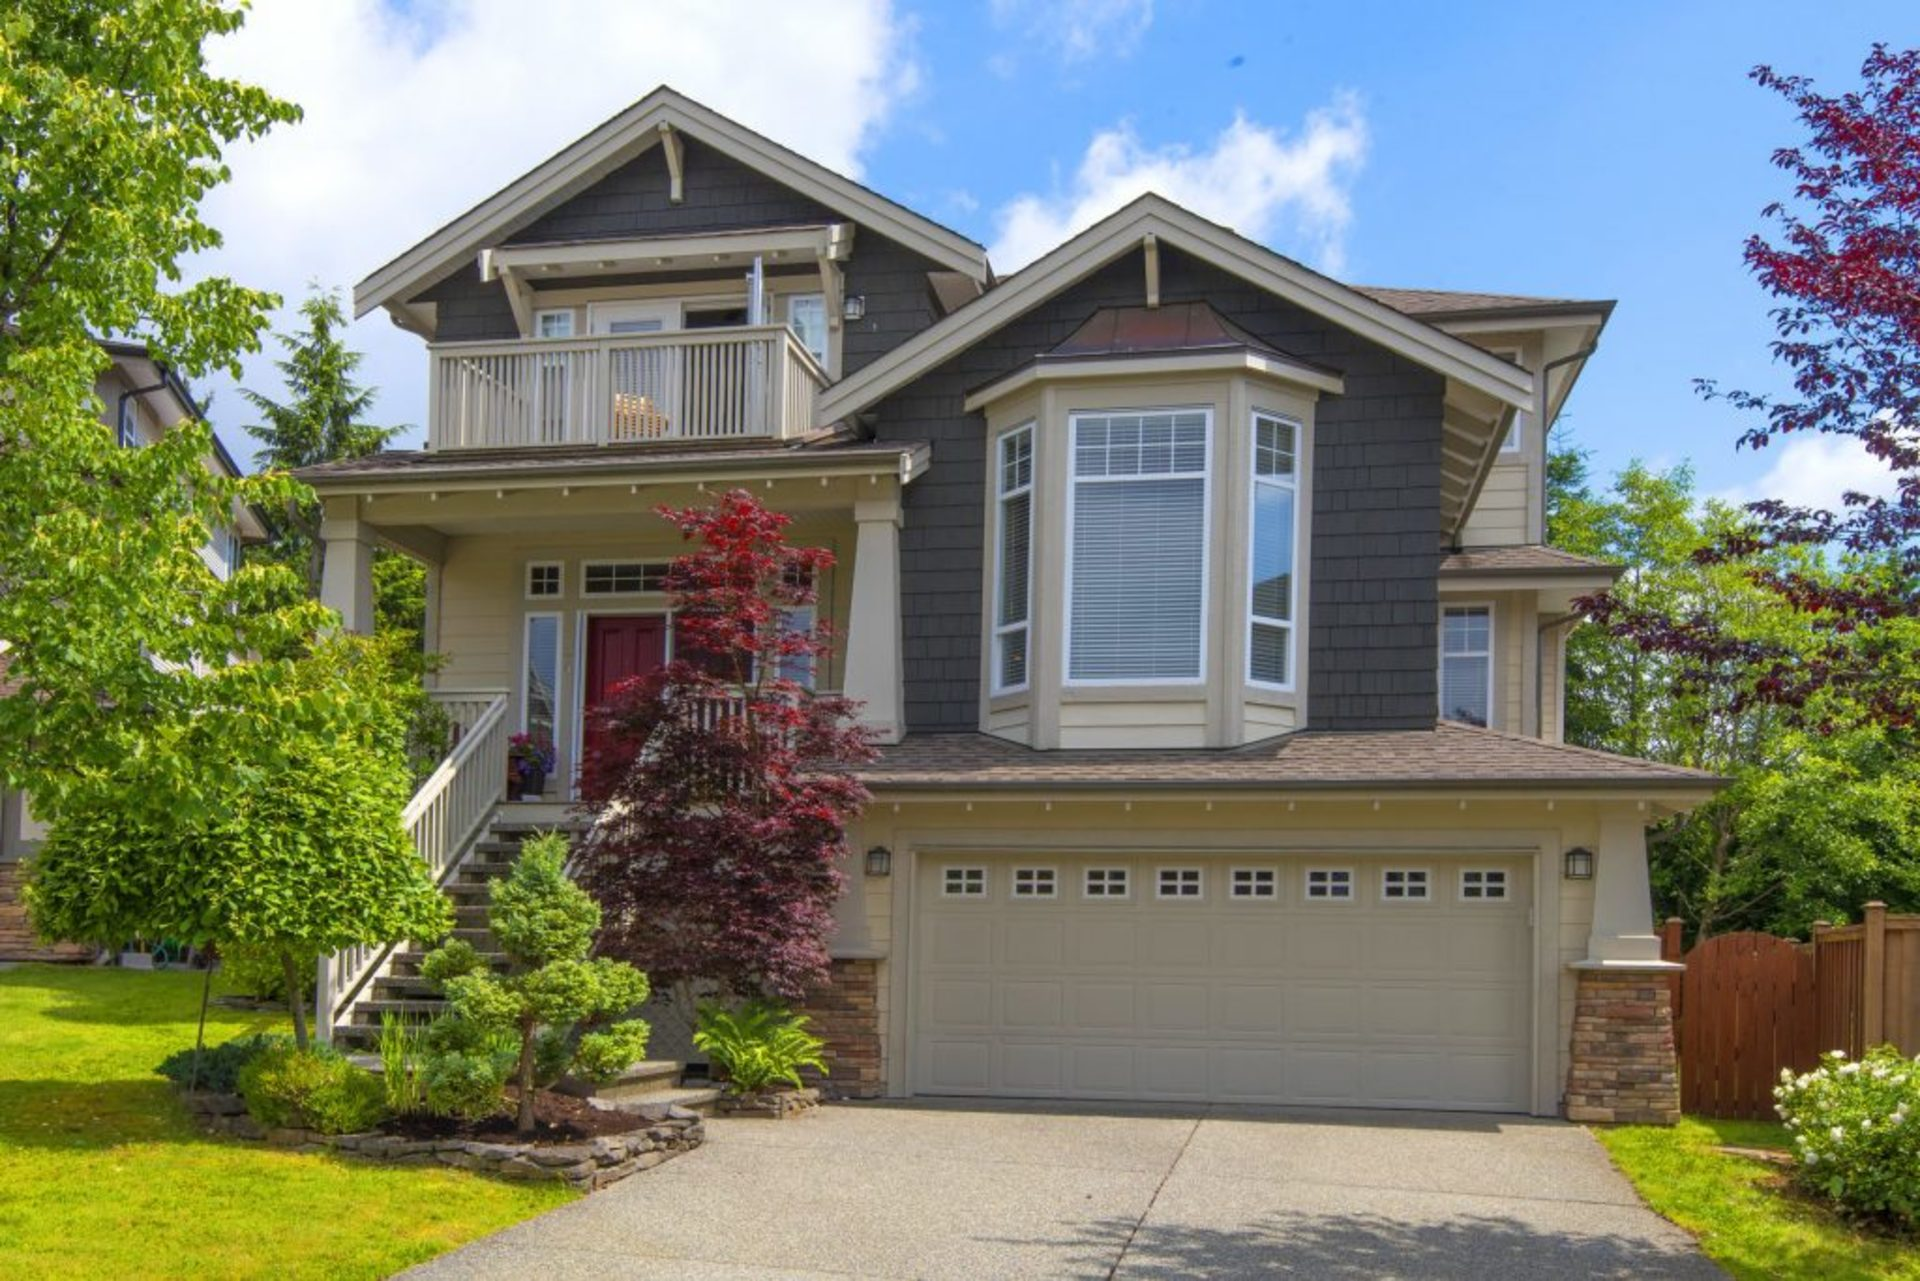 rsz_main-1024x683 at 34 Spruce, Port Moody